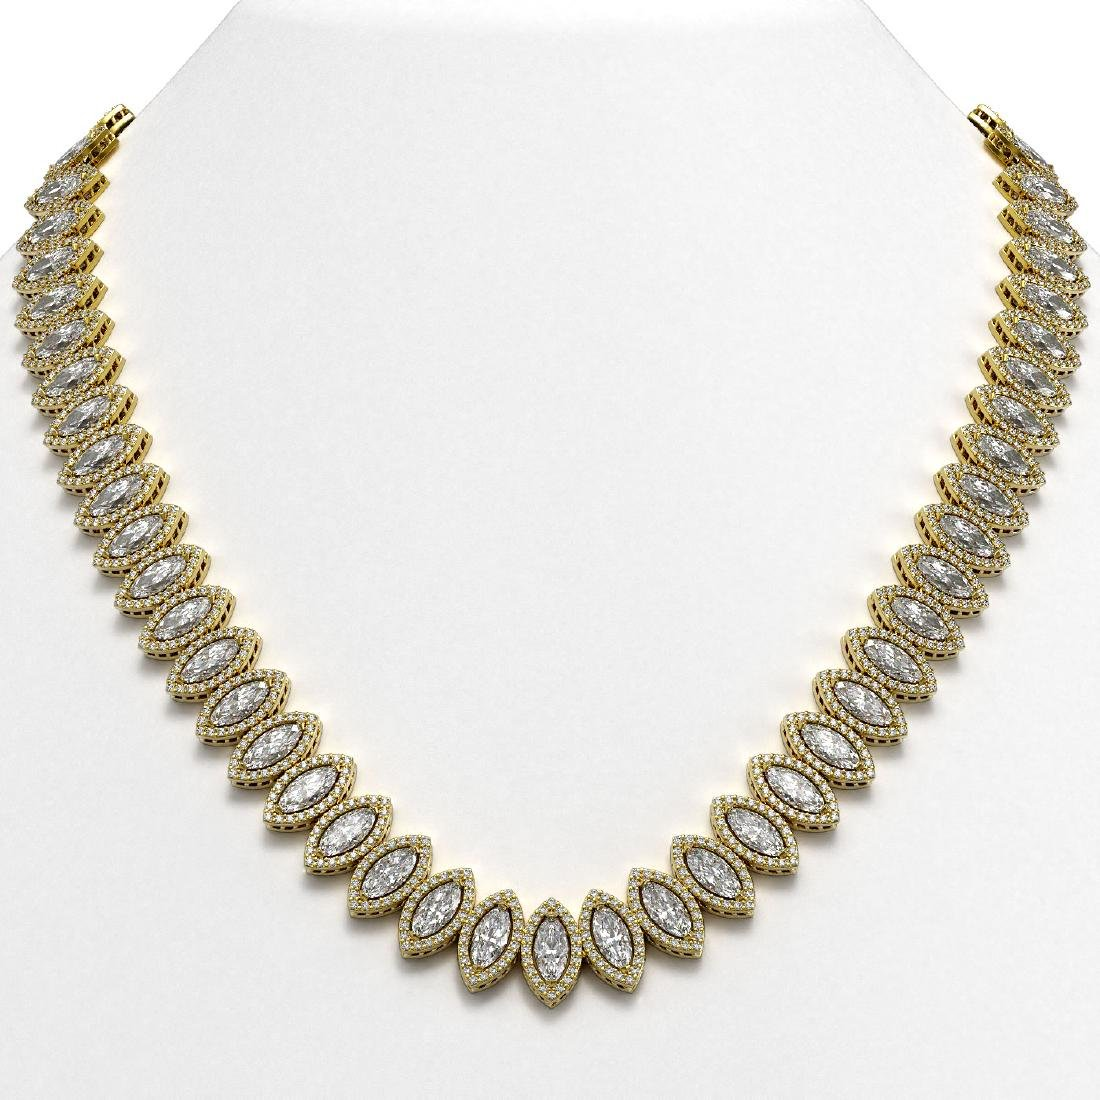 47.12 CTW Marquise Diamond Designer Necklace 18K Yellow